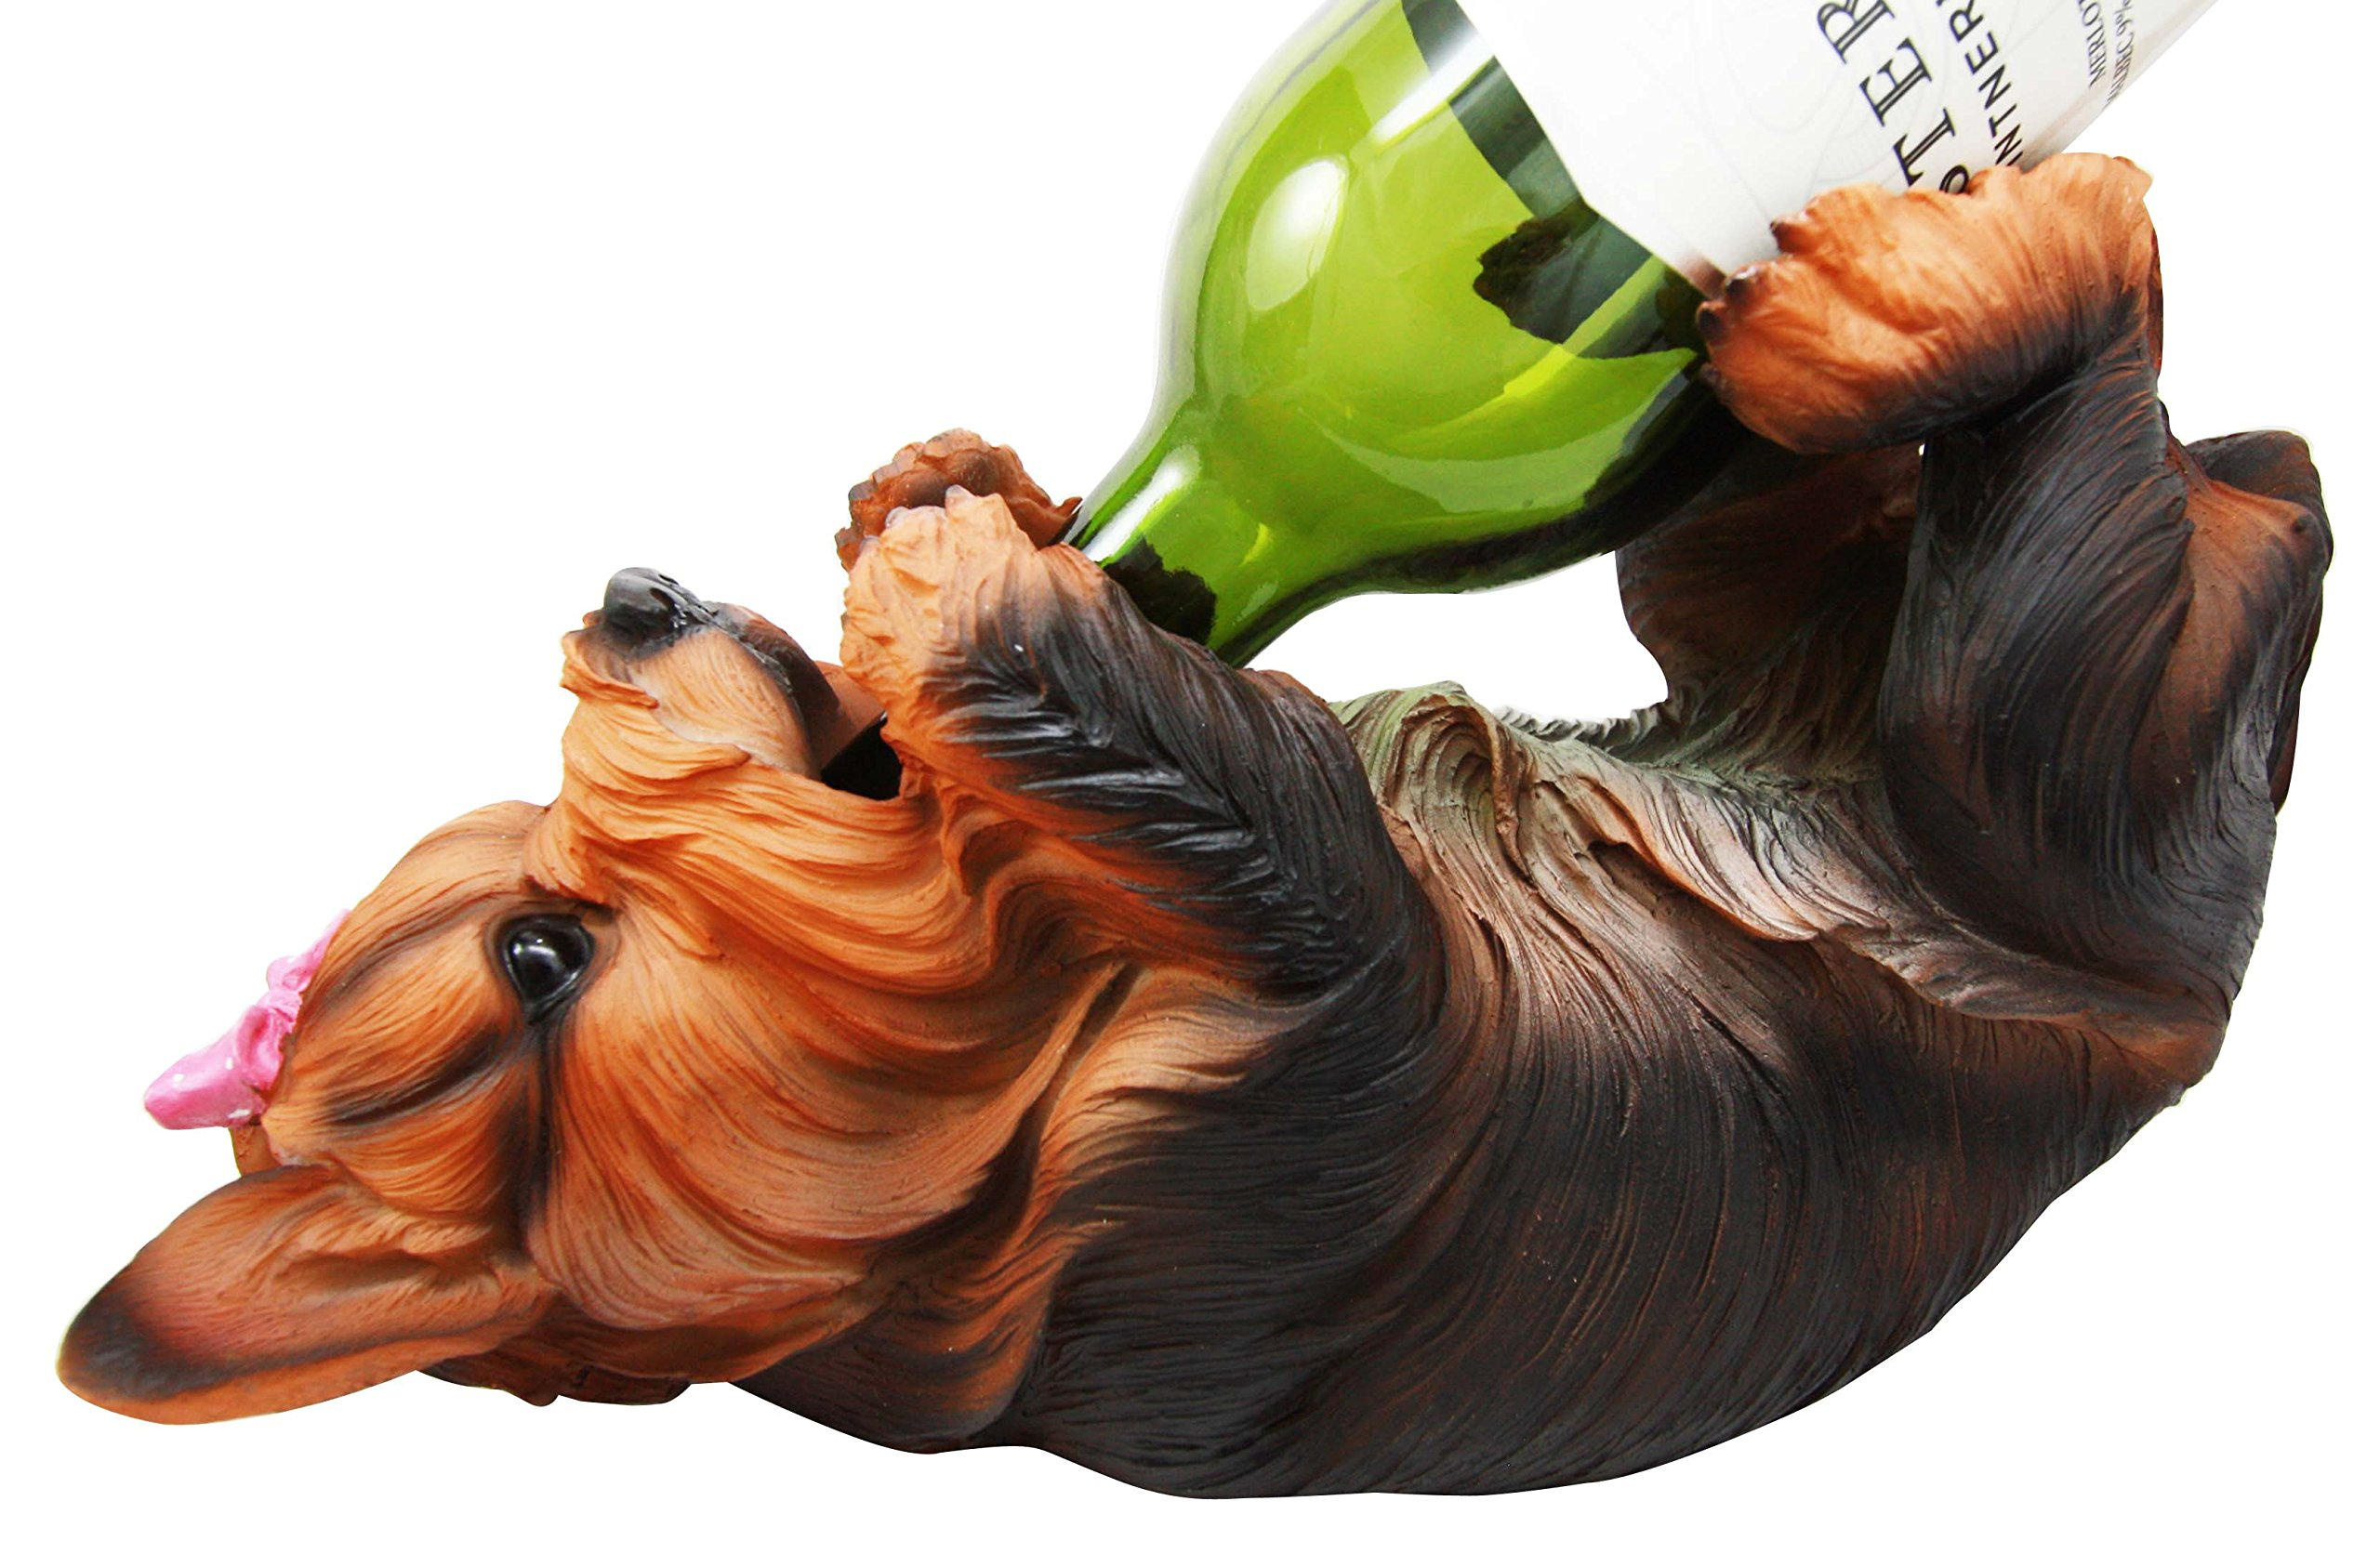 Atlantic Collectibles Yorkie Canine Dog 10.5'' Long Wine Bottle Holder Caddy Figurine by Ebros Gift